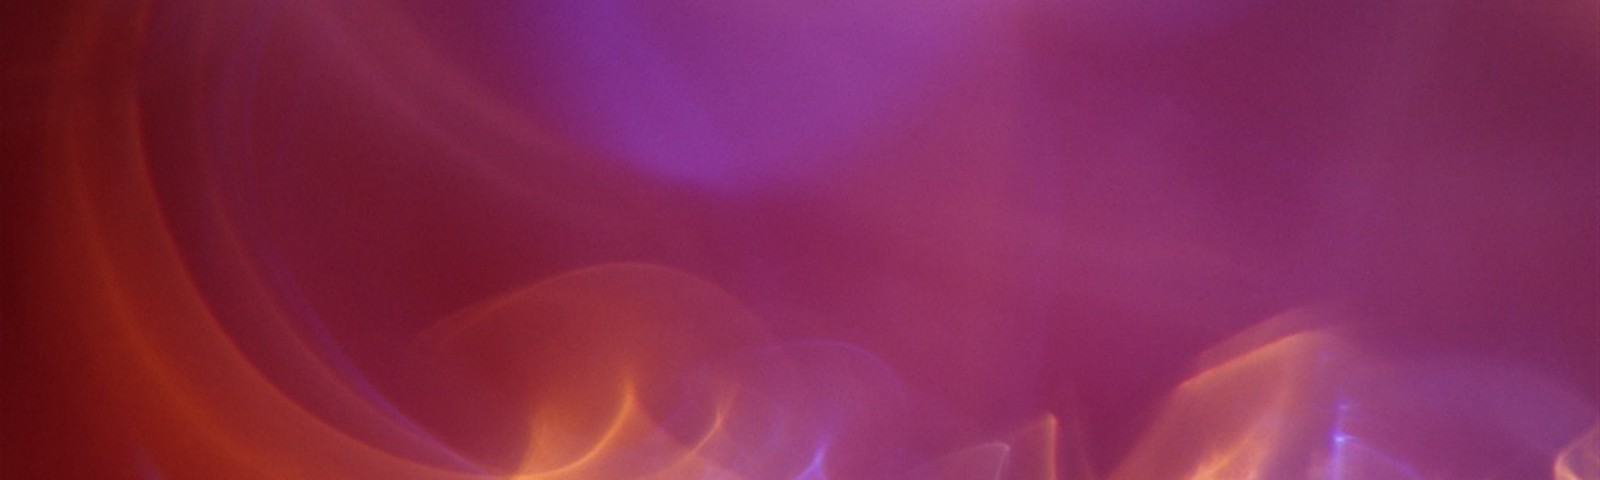 Pink abstract photograph with swirls of light, created for healing by medical doctor